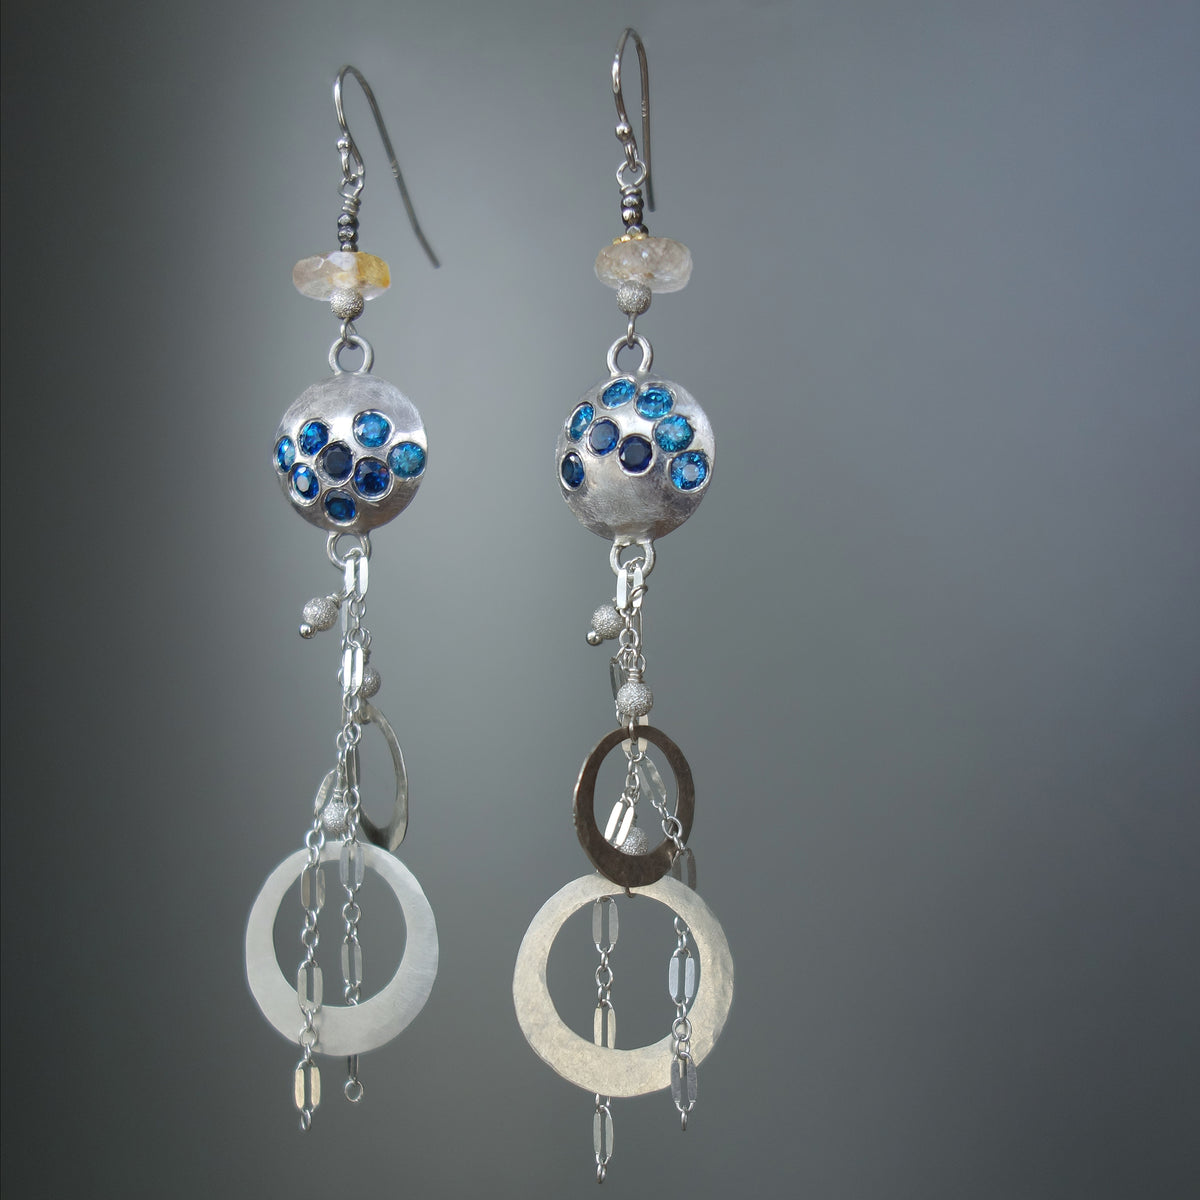 Waterfall earring of zircon and hand hammered silver